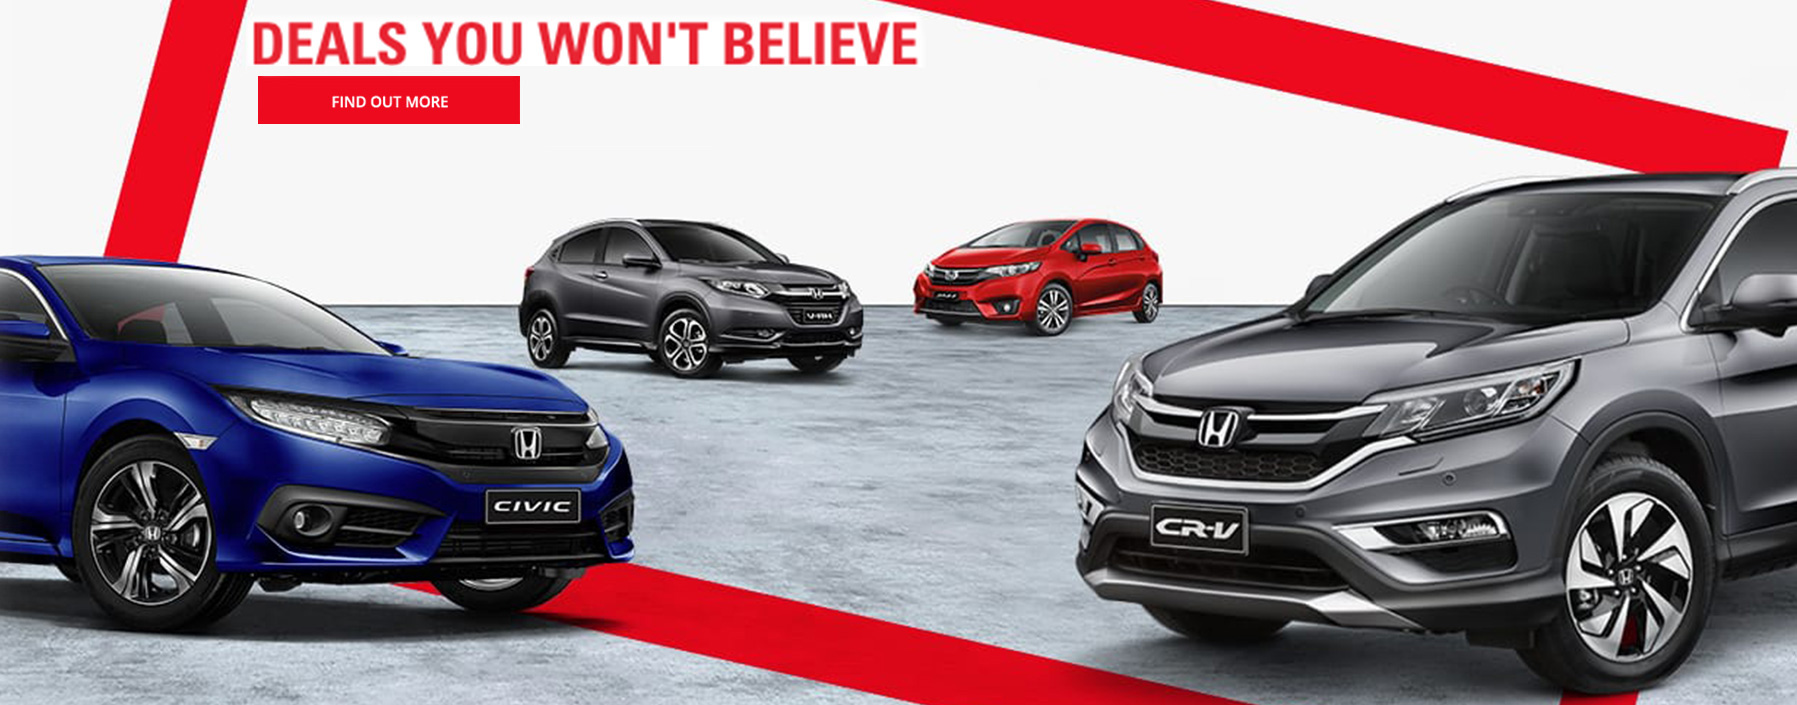 Deals you won't believe on all 2016 Build Honda's at Northside Honda Brisbane.